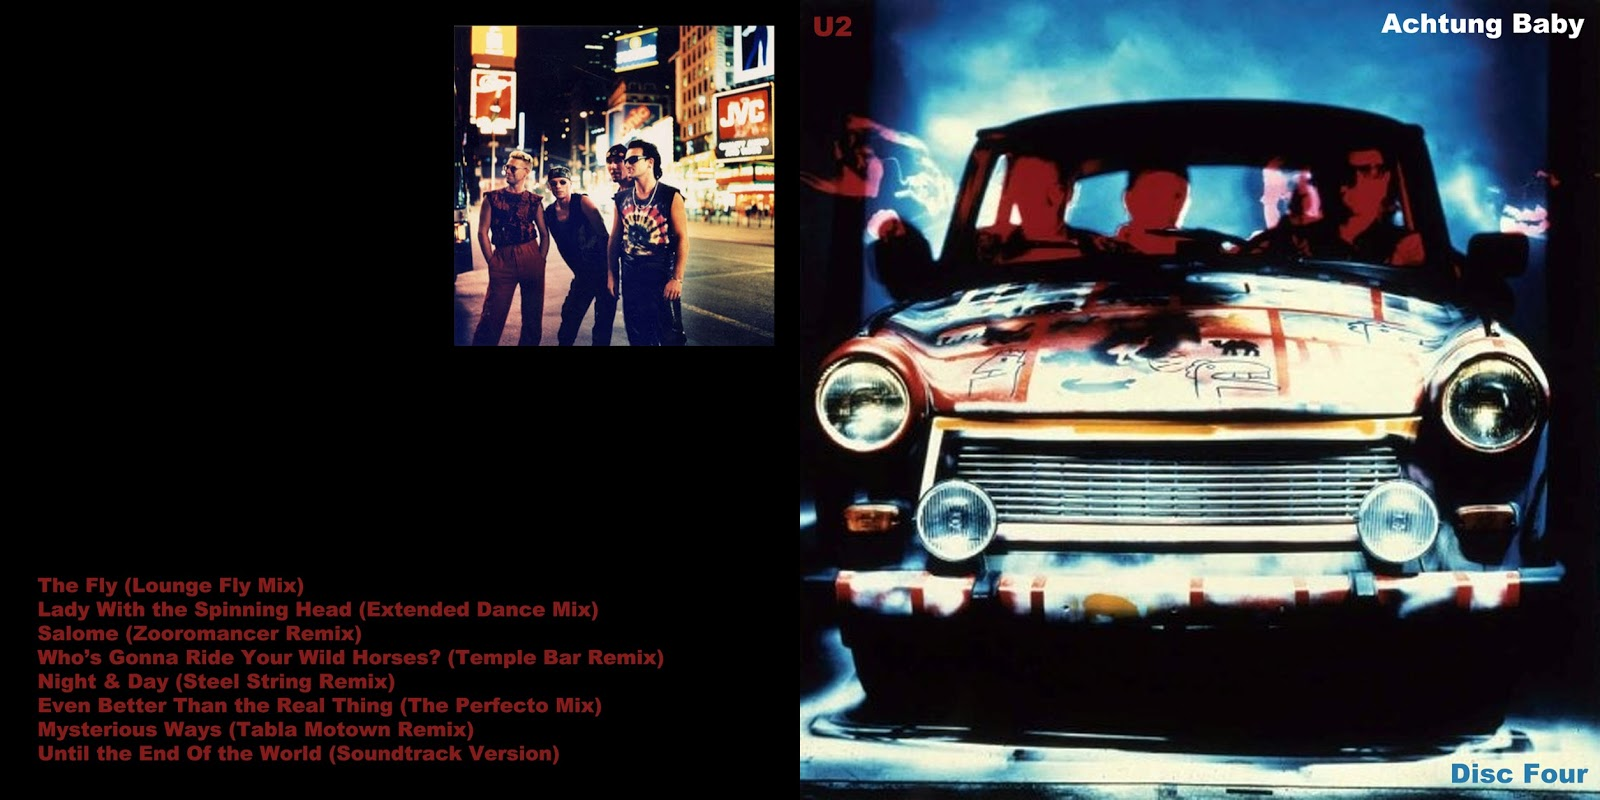 All The Air In My Lungs  U2 - Achtung Baby